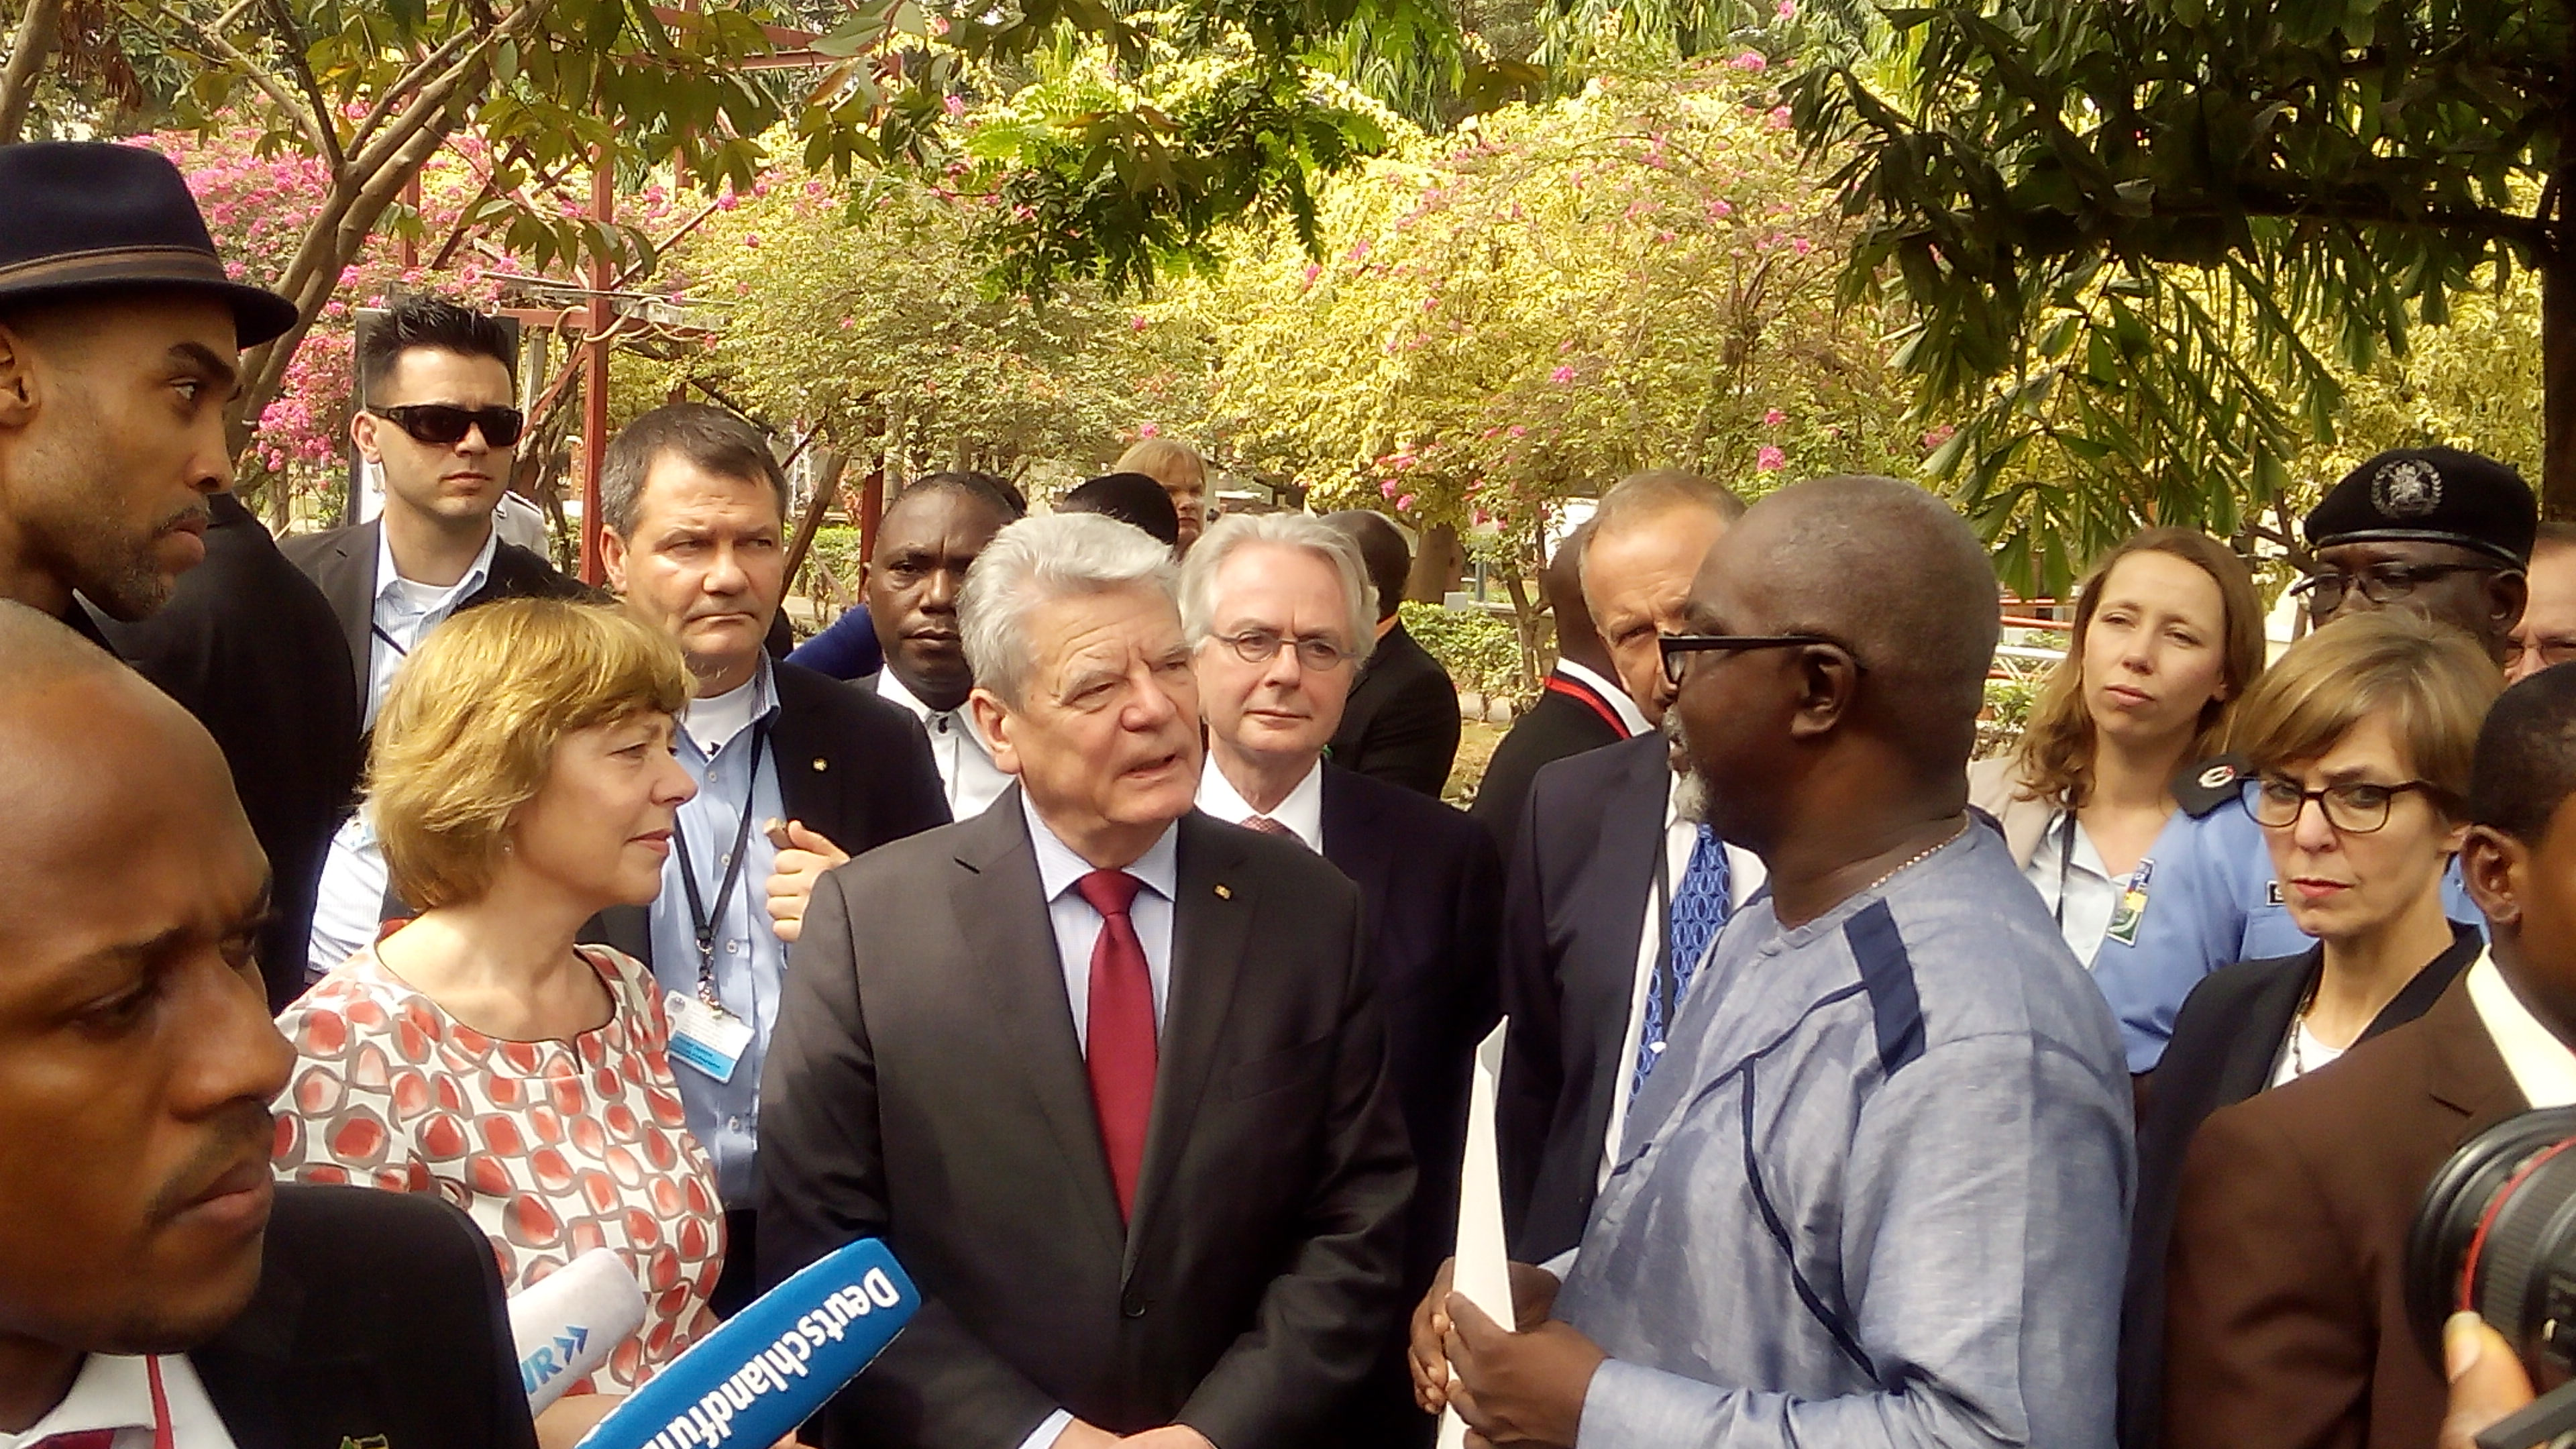 German President Pays Visit to Wole Soyinka at Freedom Park Lagos